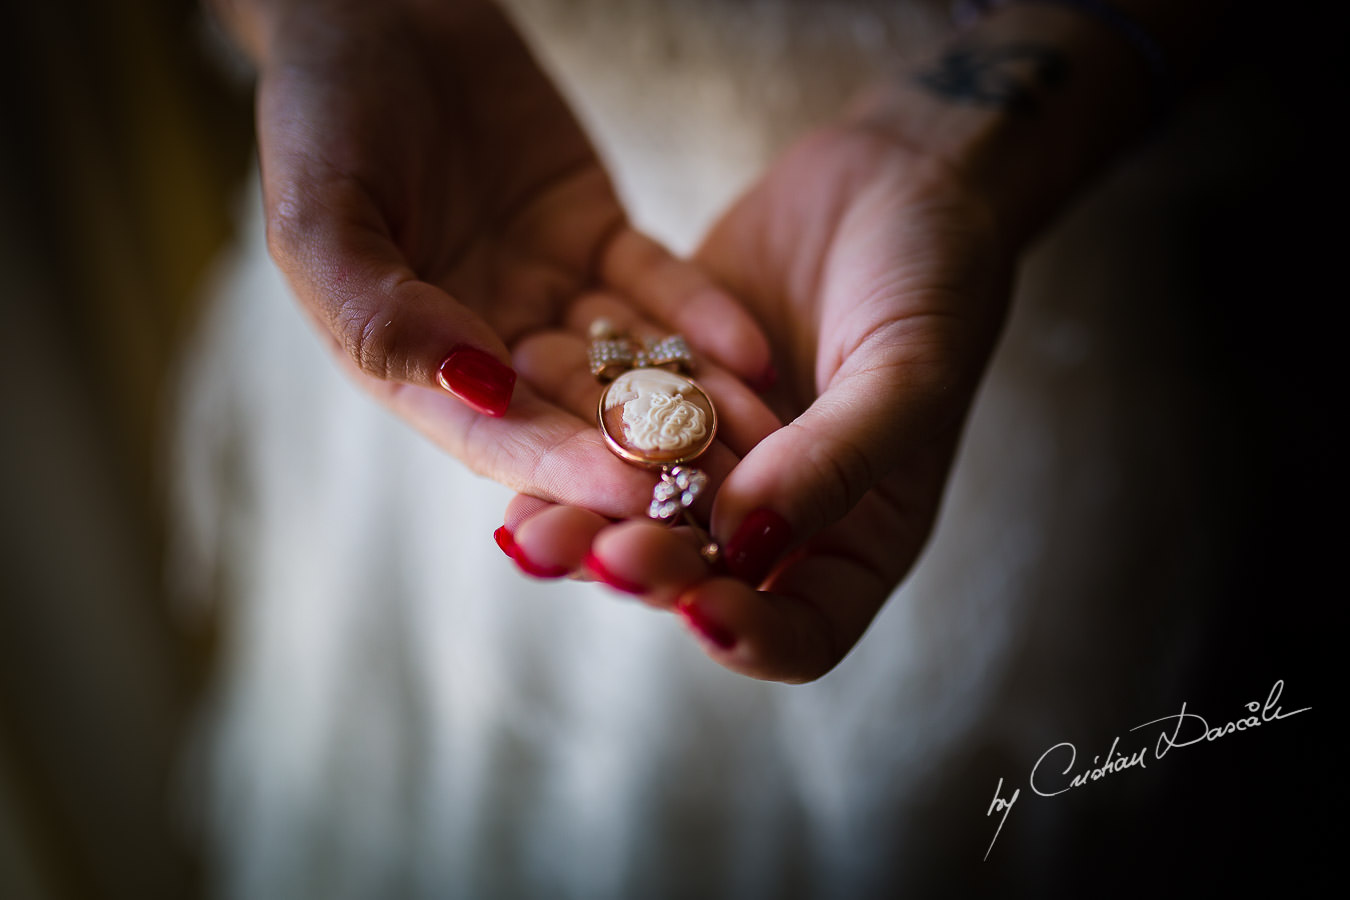 The bride`s earing, captured by Cyprus Wedding Photographer Cristian Dascalu at a beautiful wedding in Larnaka, Cyprus.